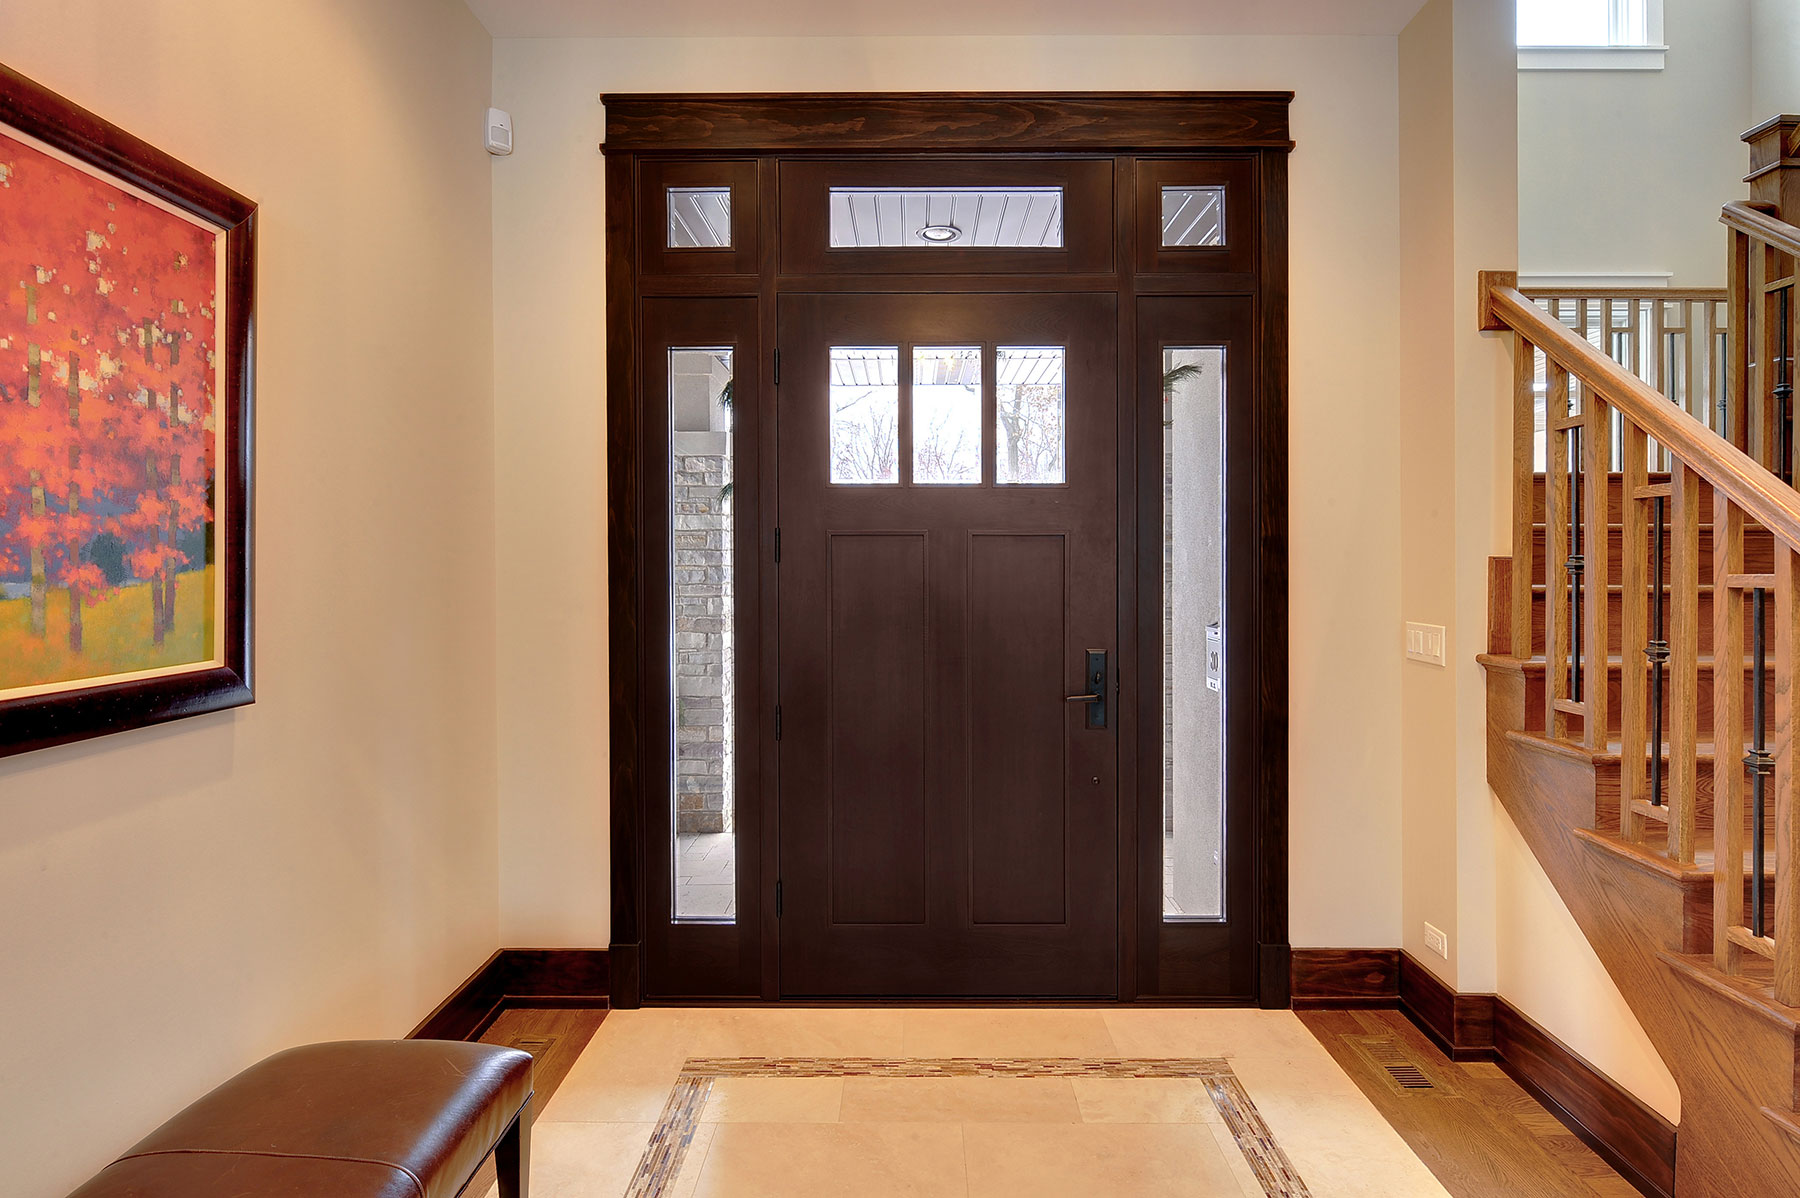 Custom Wood Front Entry Doors | Custom Craftsman Solid Mahogany Wood Door with Sidelites and Transom with Clear Beveled Glass, Interior View  - Glenview Doors - Custom Doors in Chicago